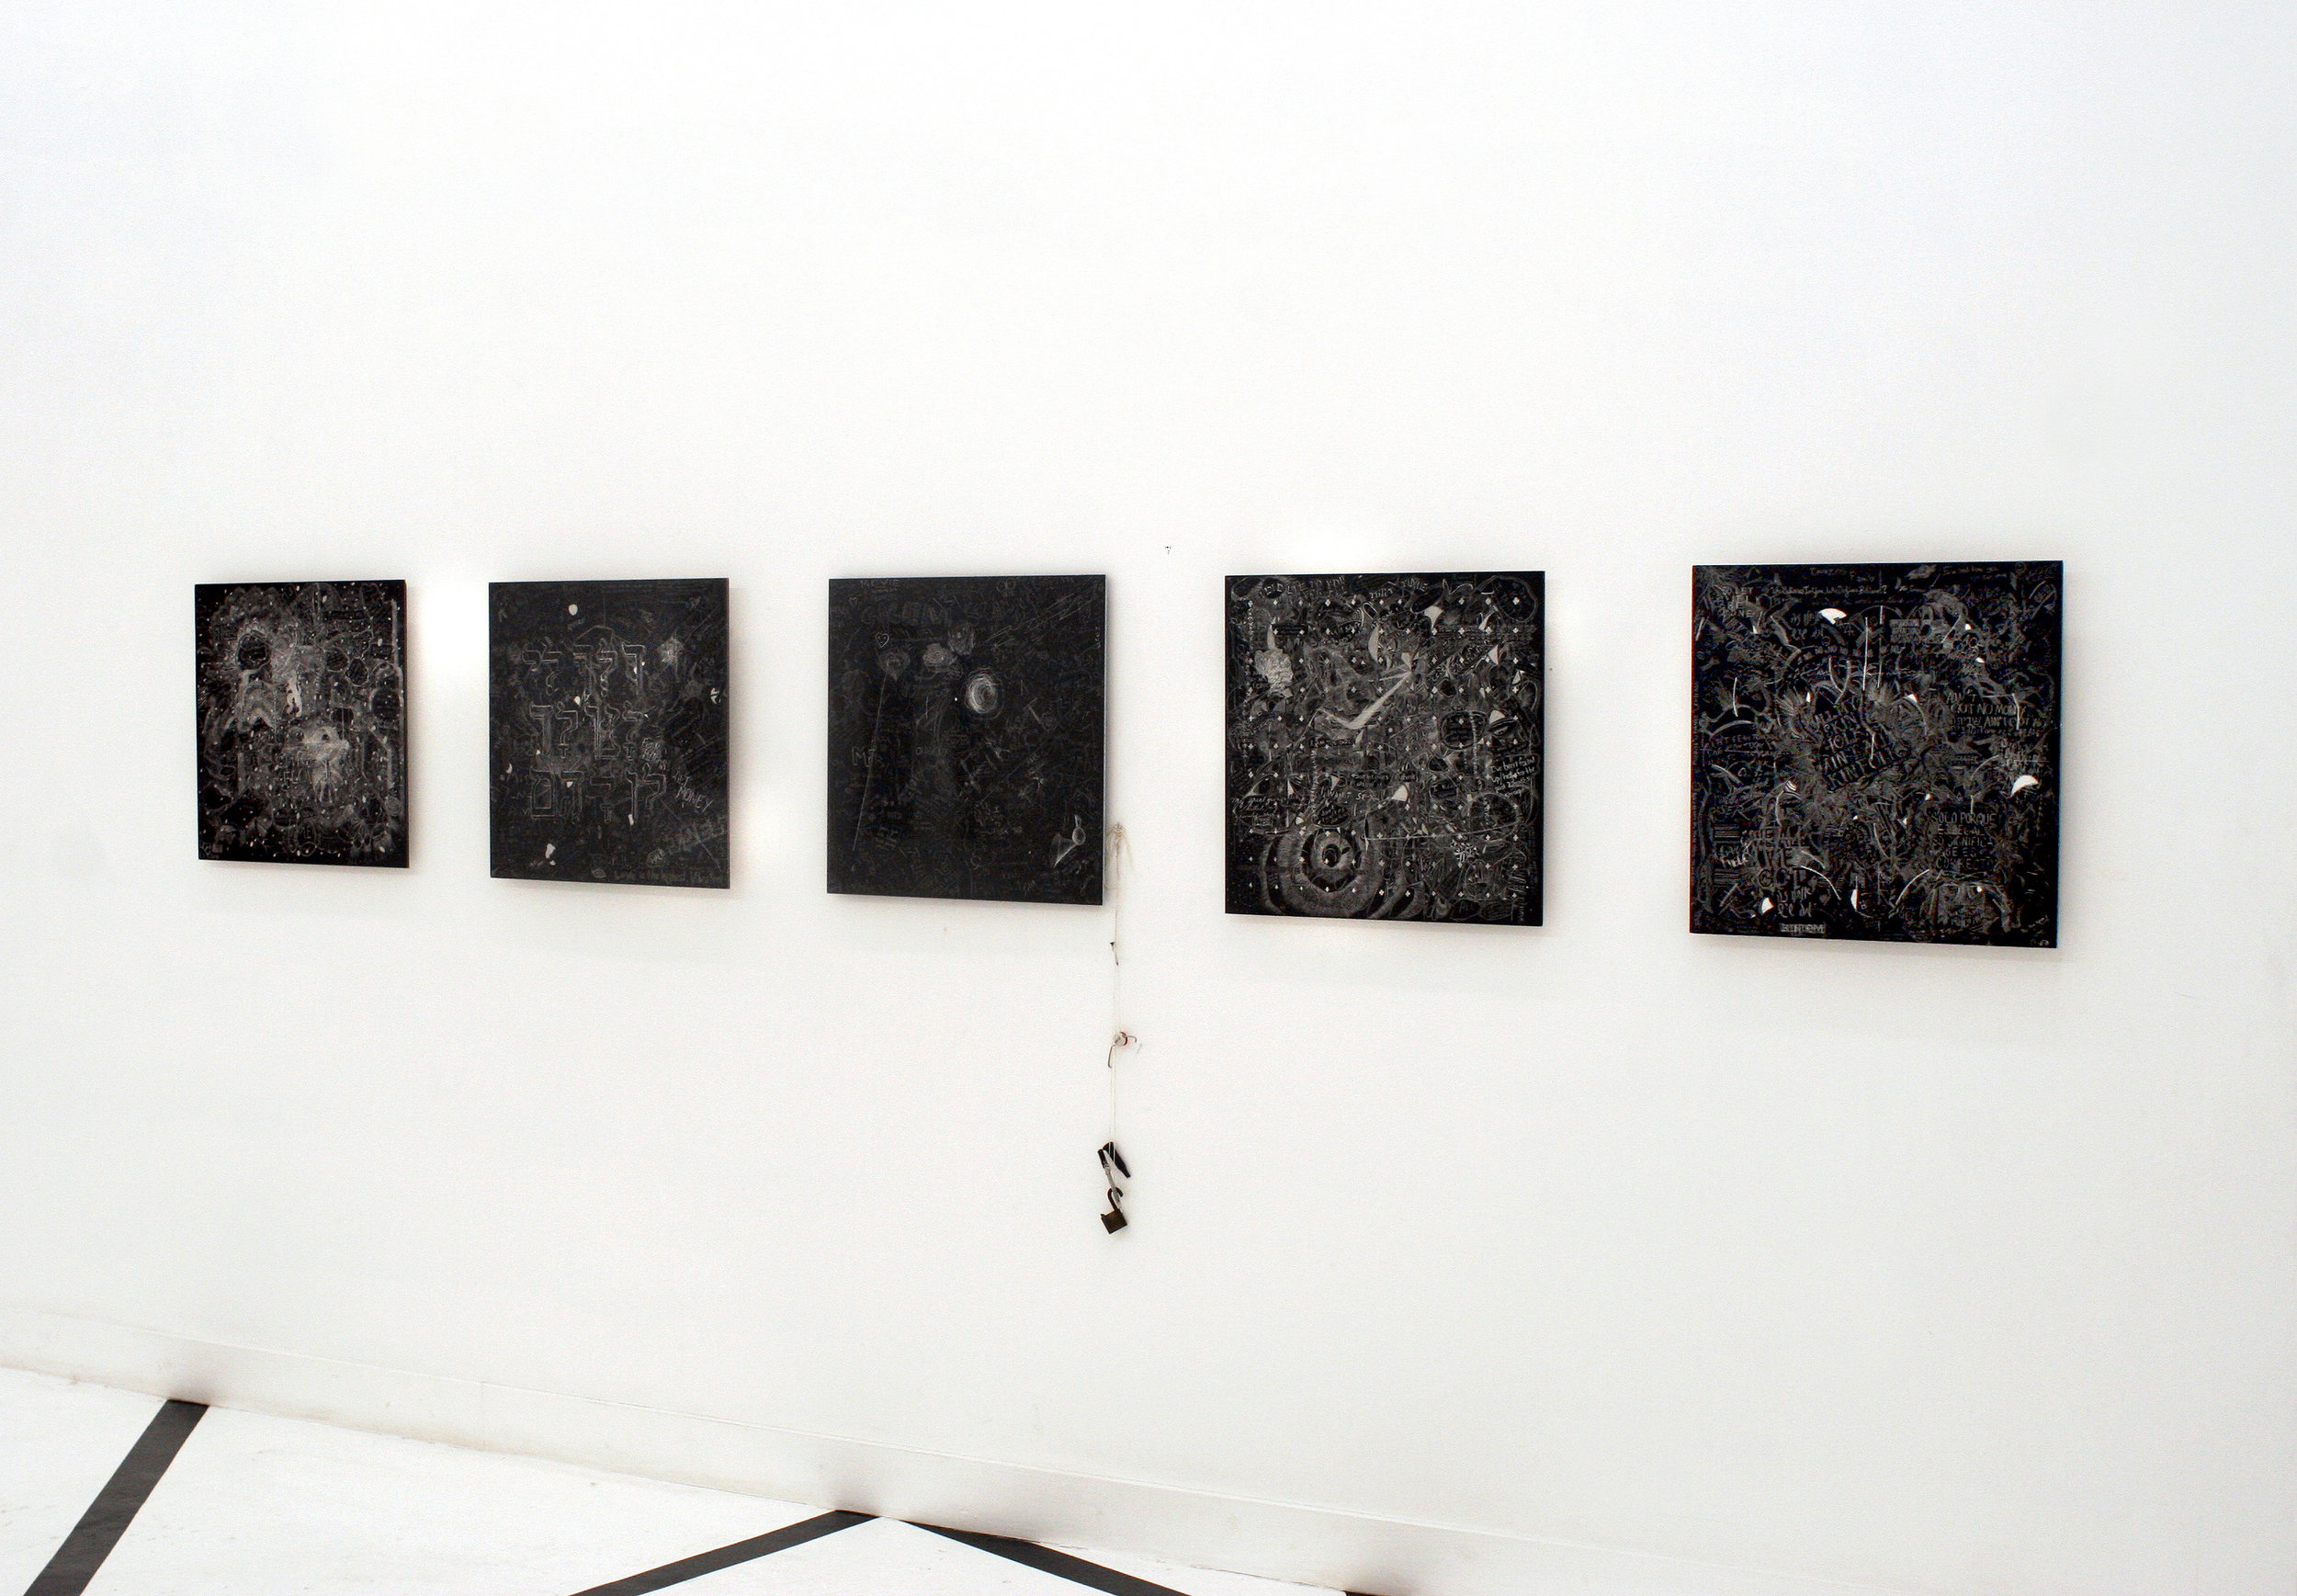 Installation view of Secrets, General, Confessions at Confection, OHWOW, Miami, FL